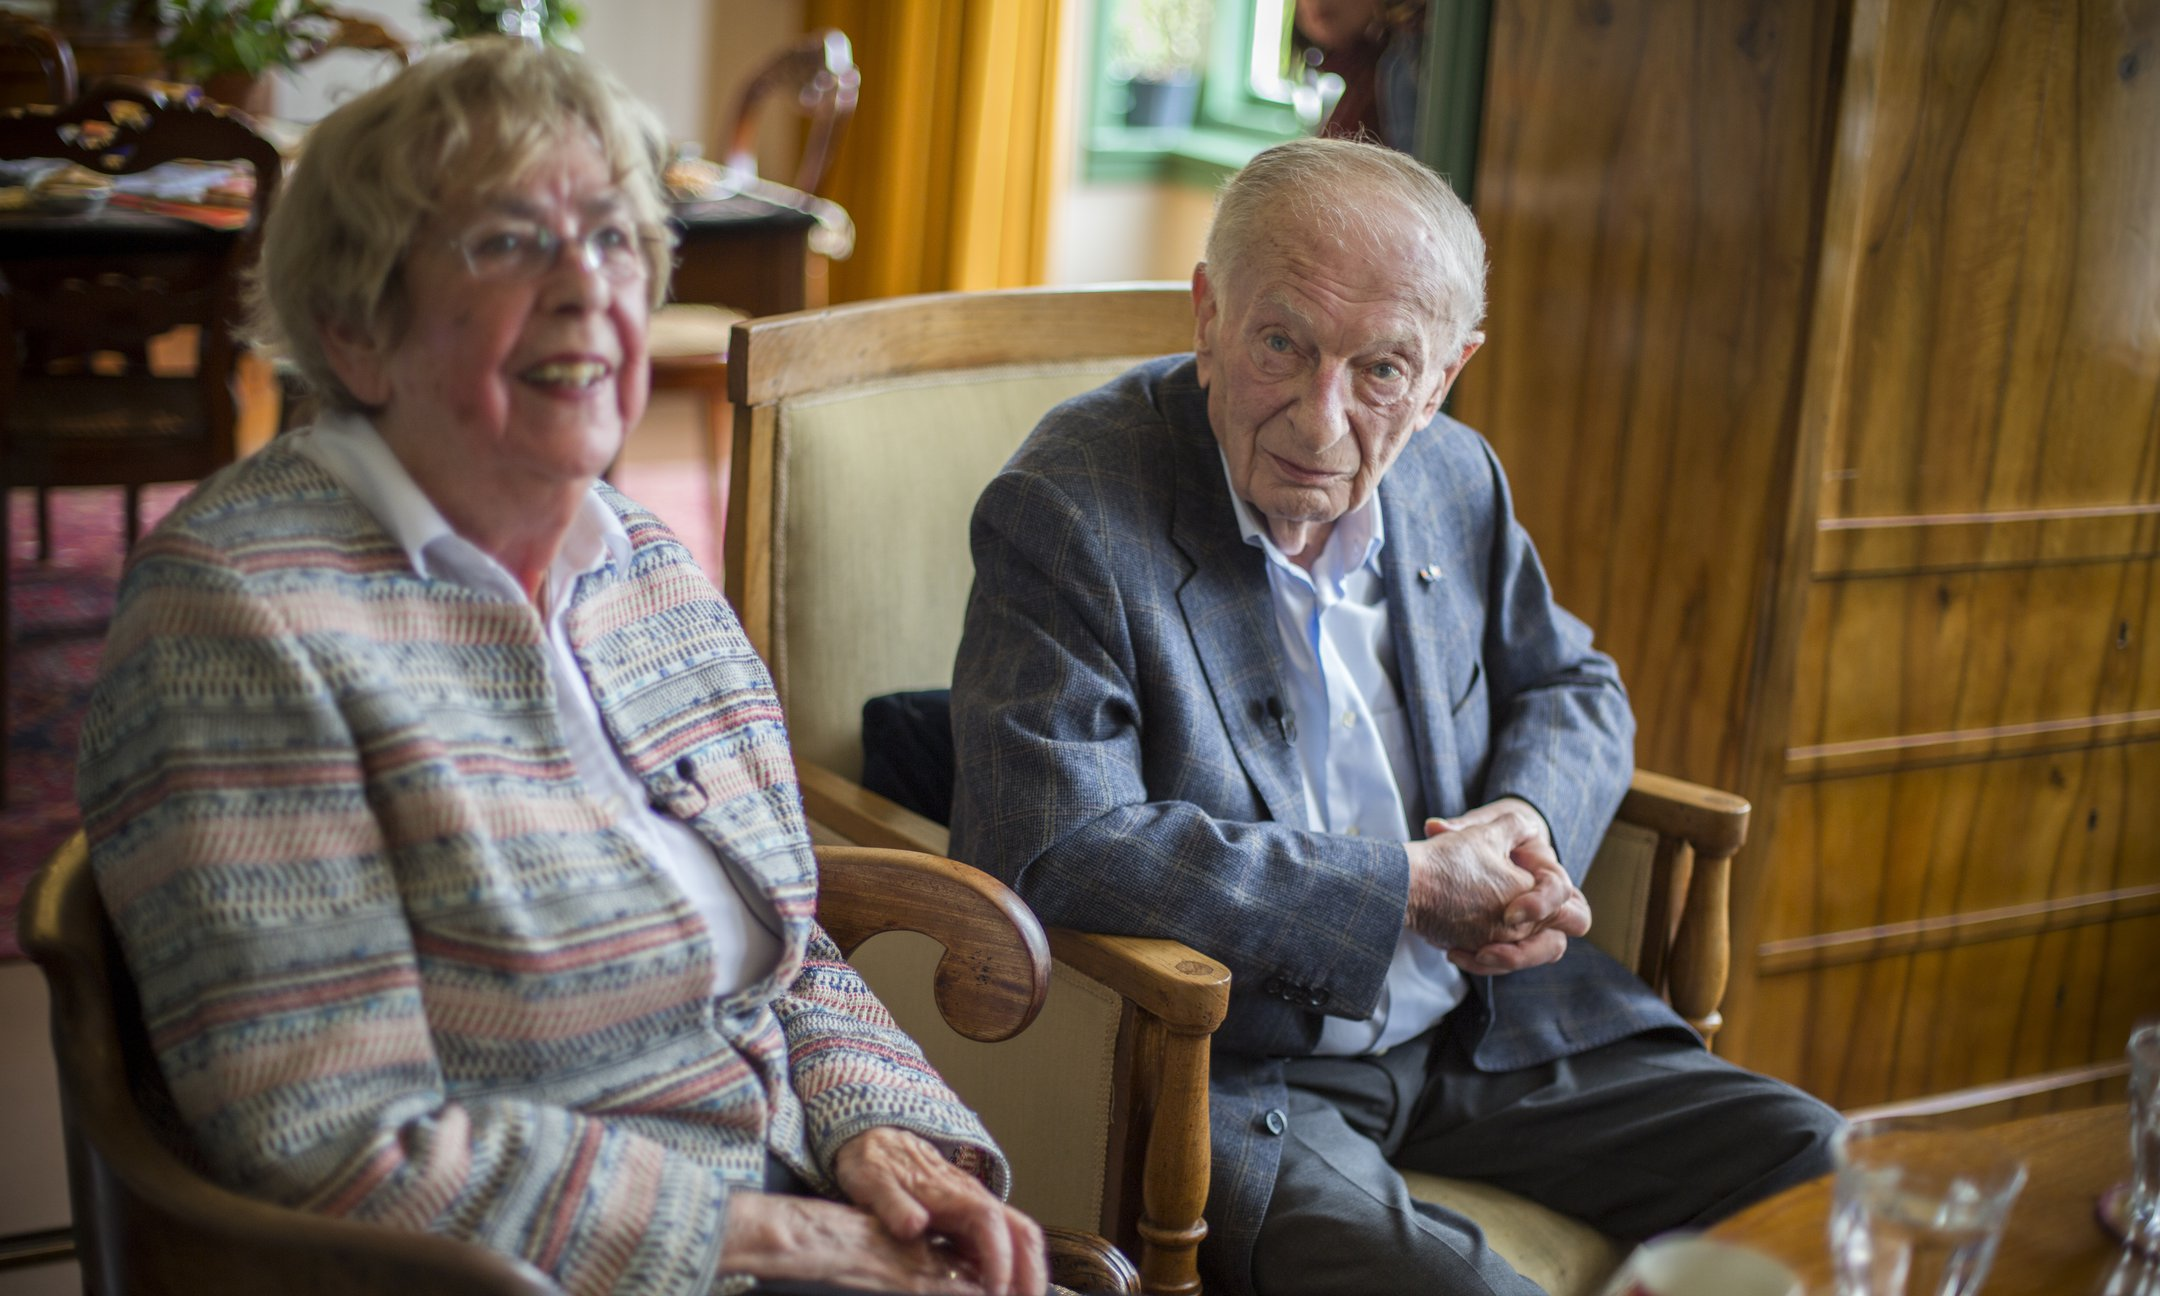 Former classmates Jacqueline van Maarsen (90) and Albert Gomes de Mesquita (89): 'What really matters is that we can eliminate discrimination. Anything that contributes towards that goal is good. And that's why I'm here.'